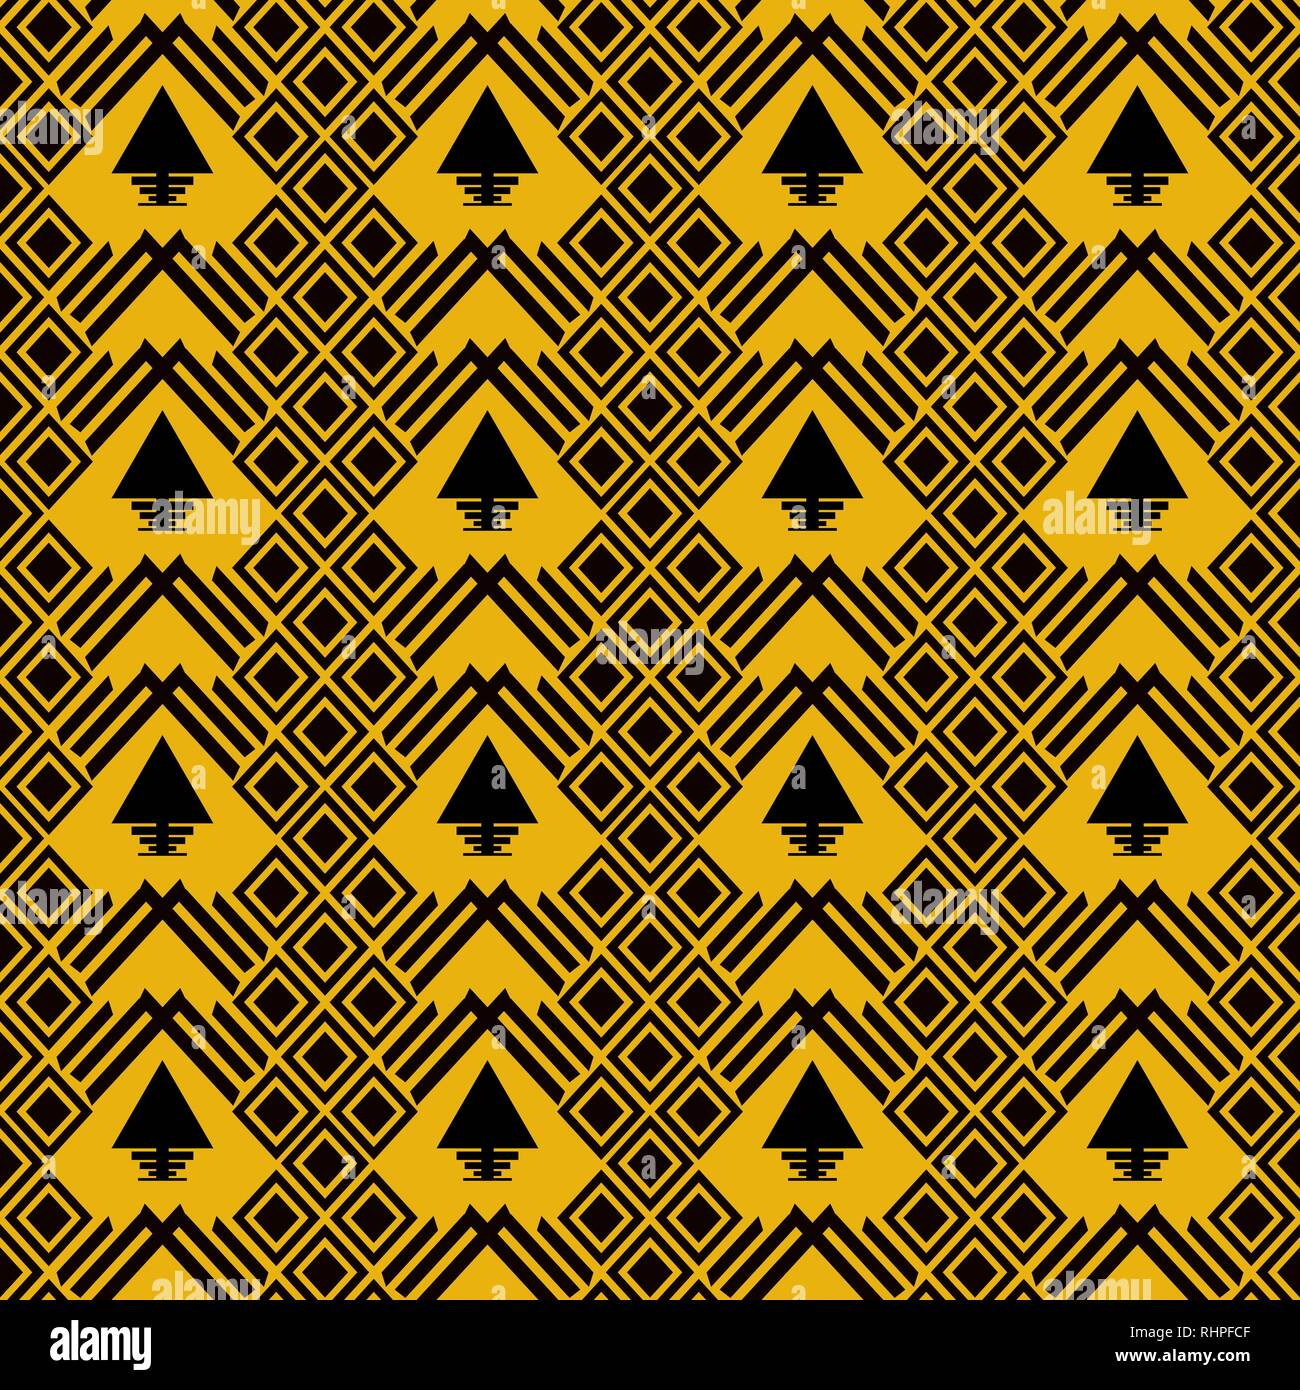 Tribal Navajo Vector Seamless Pattern Aztec Fancy Abstract